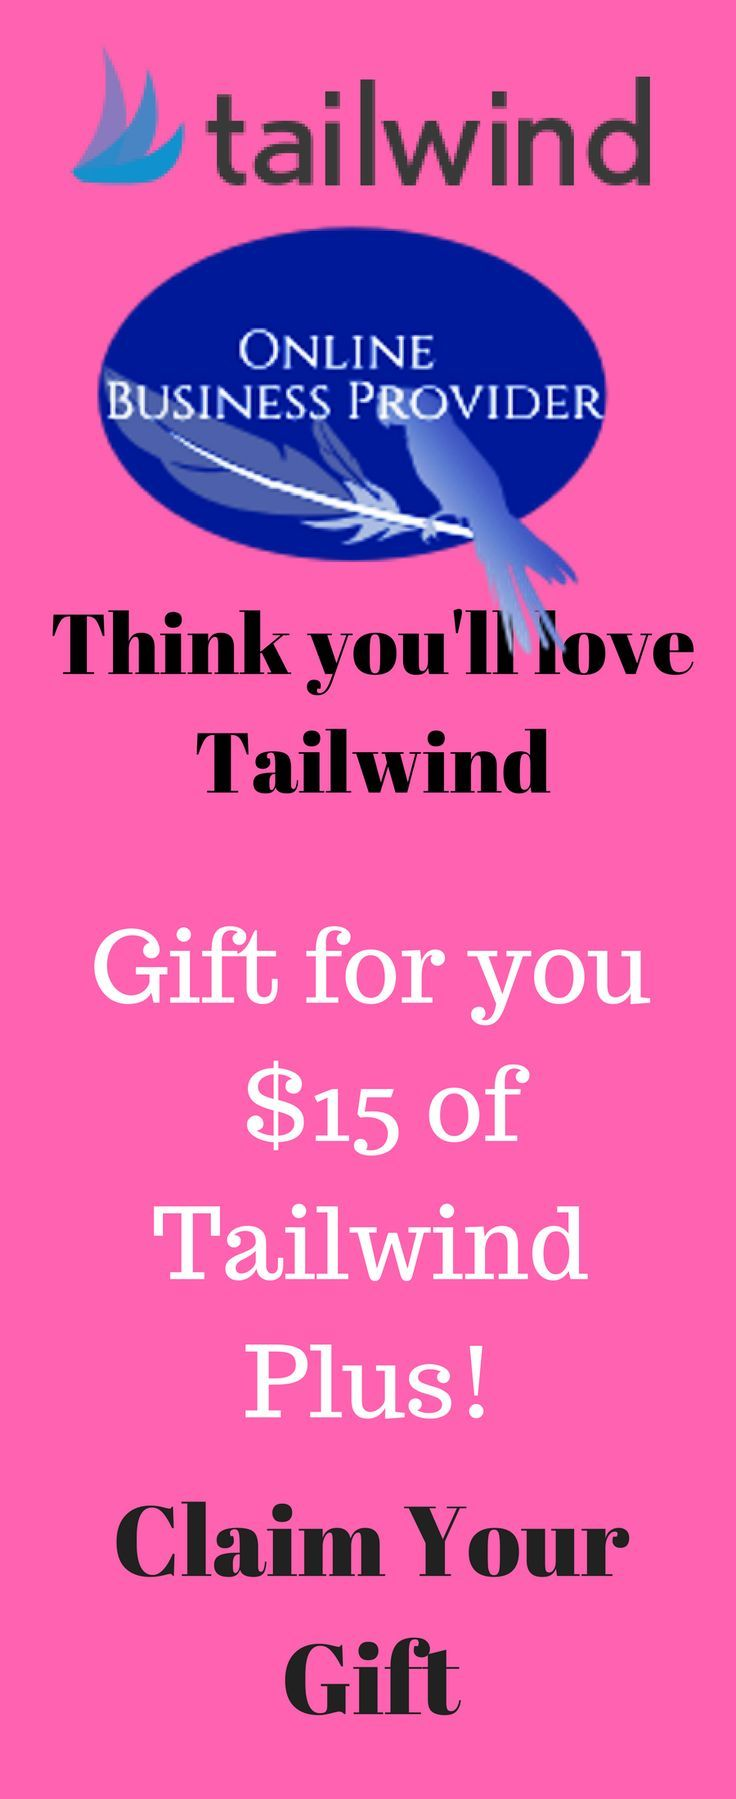 Online Business Provider thinks you'll love Tailwind and sent you $15 of Tailwind Plus!    Claim Your Gift     Tailwind is the smartest way to manage your presence across the visual web (Pinterest & Instagram). Tailwind is an official partner of both Pinterest and Instagram and offers a complete suite of marketing tools including Smart Scheduling, Analytics & Monitoring, Content Discovery, Promotion, and more.   Find out why over 100,000 bloggers, brands and agencies rely on Tailwind